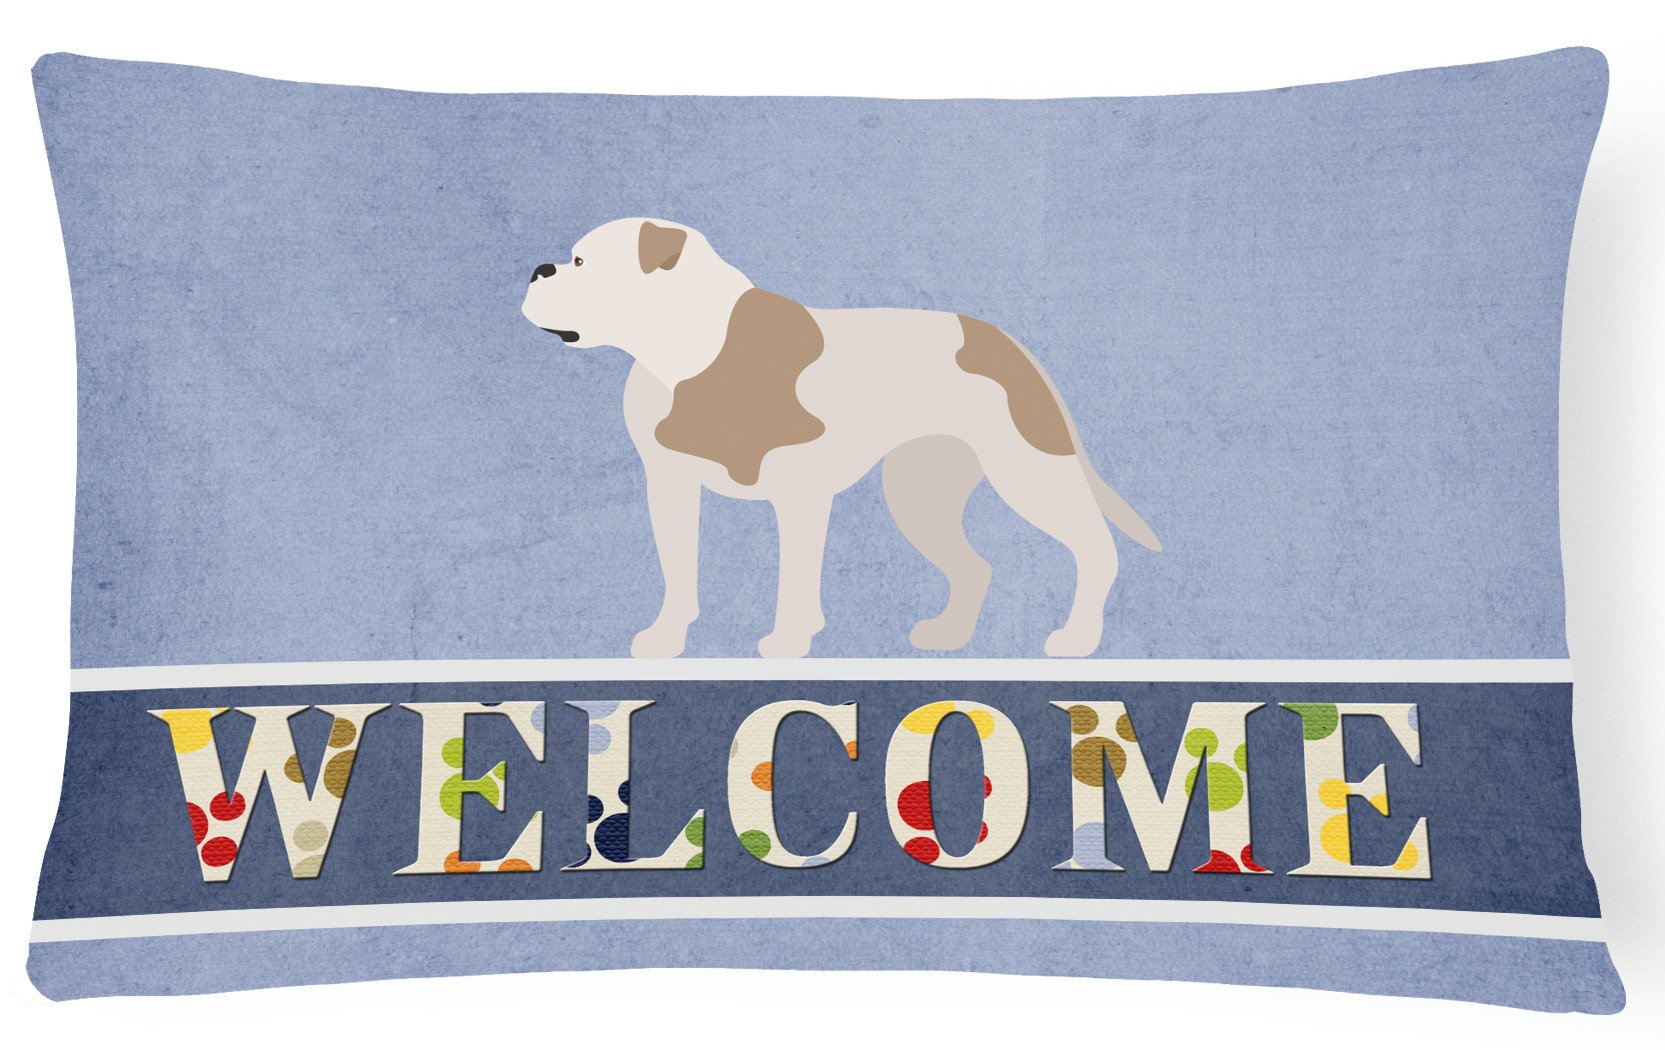 American Bulldog Welcome Canvas Fabric Decorative Pillow BB8348PW1216 by Caroline's Treasures